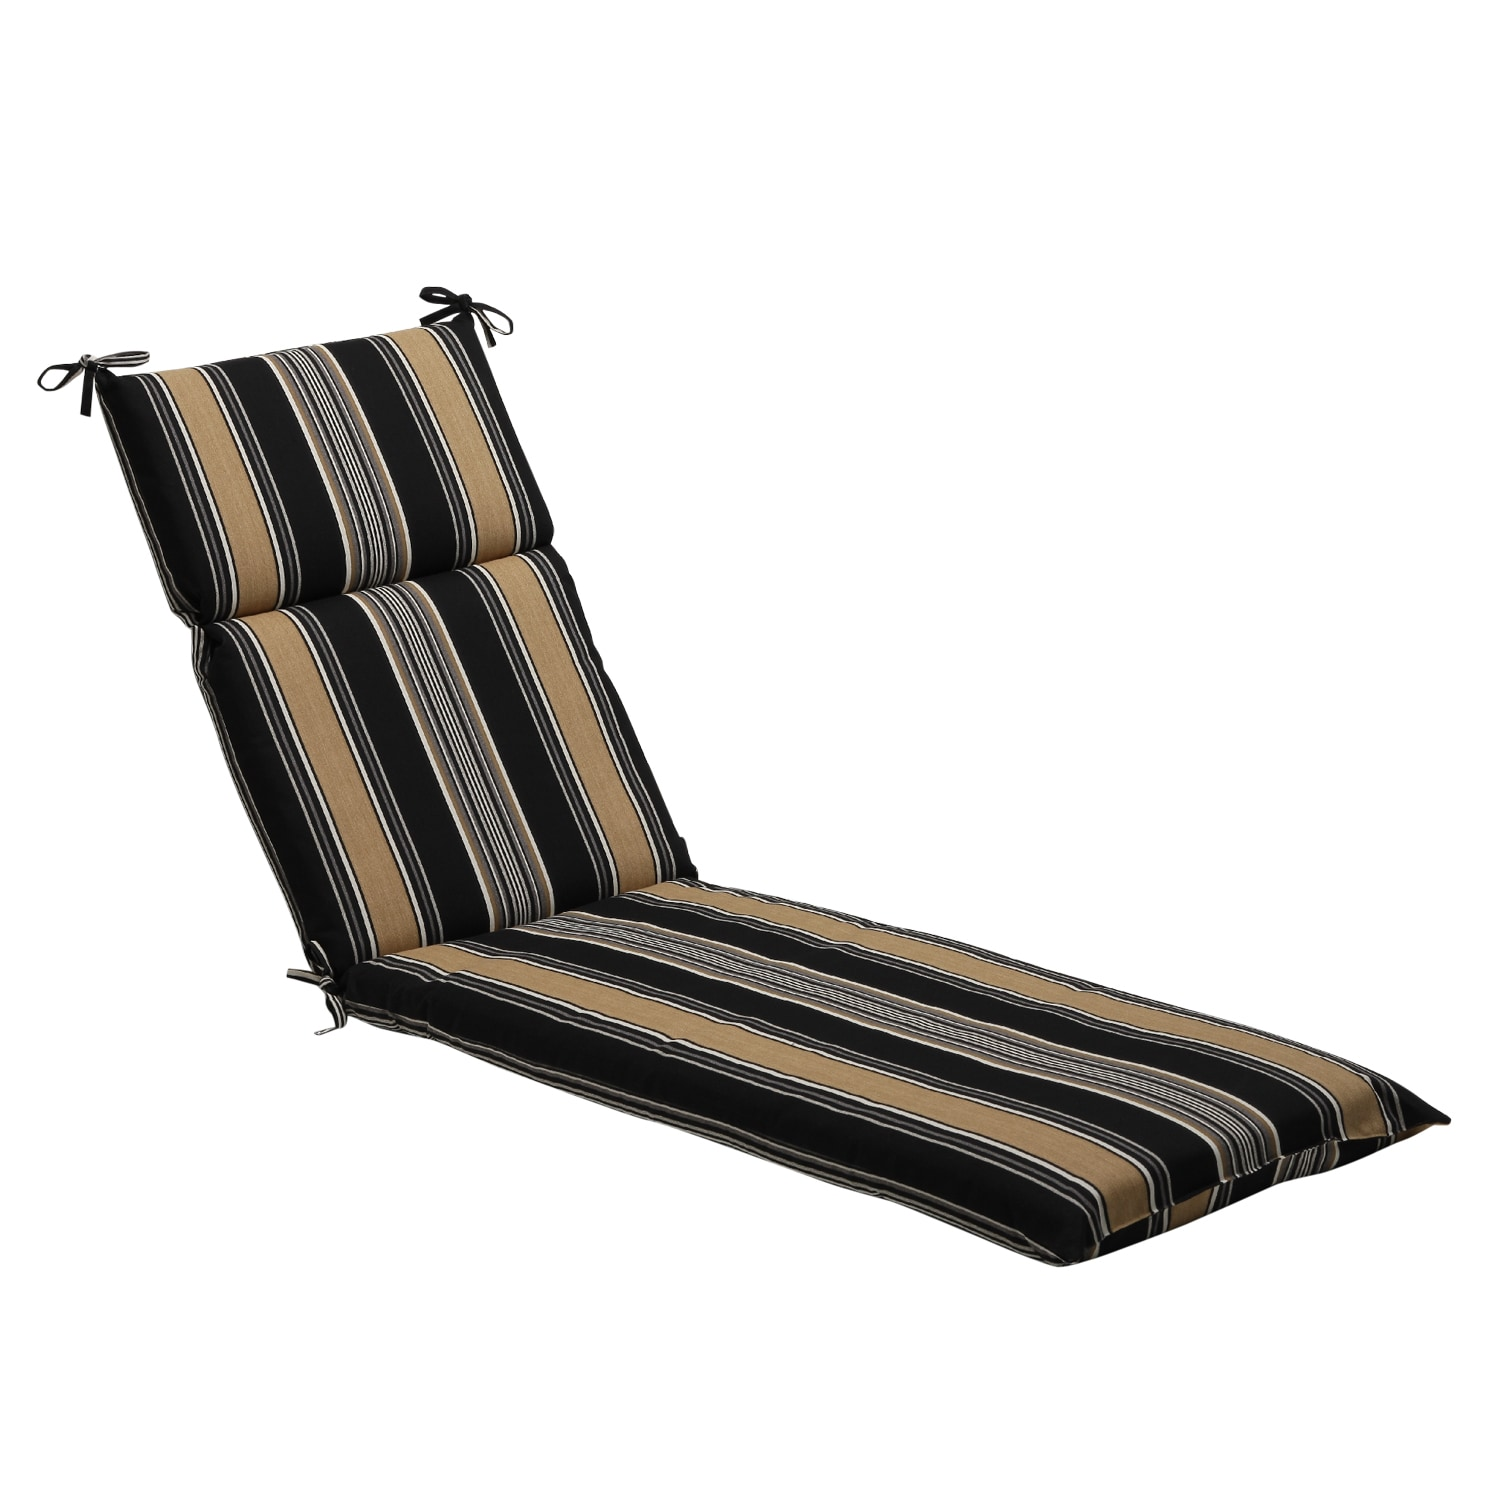 Black tan stripe outdoor chaise lounge cushion free for Black and white damask chaise lounge